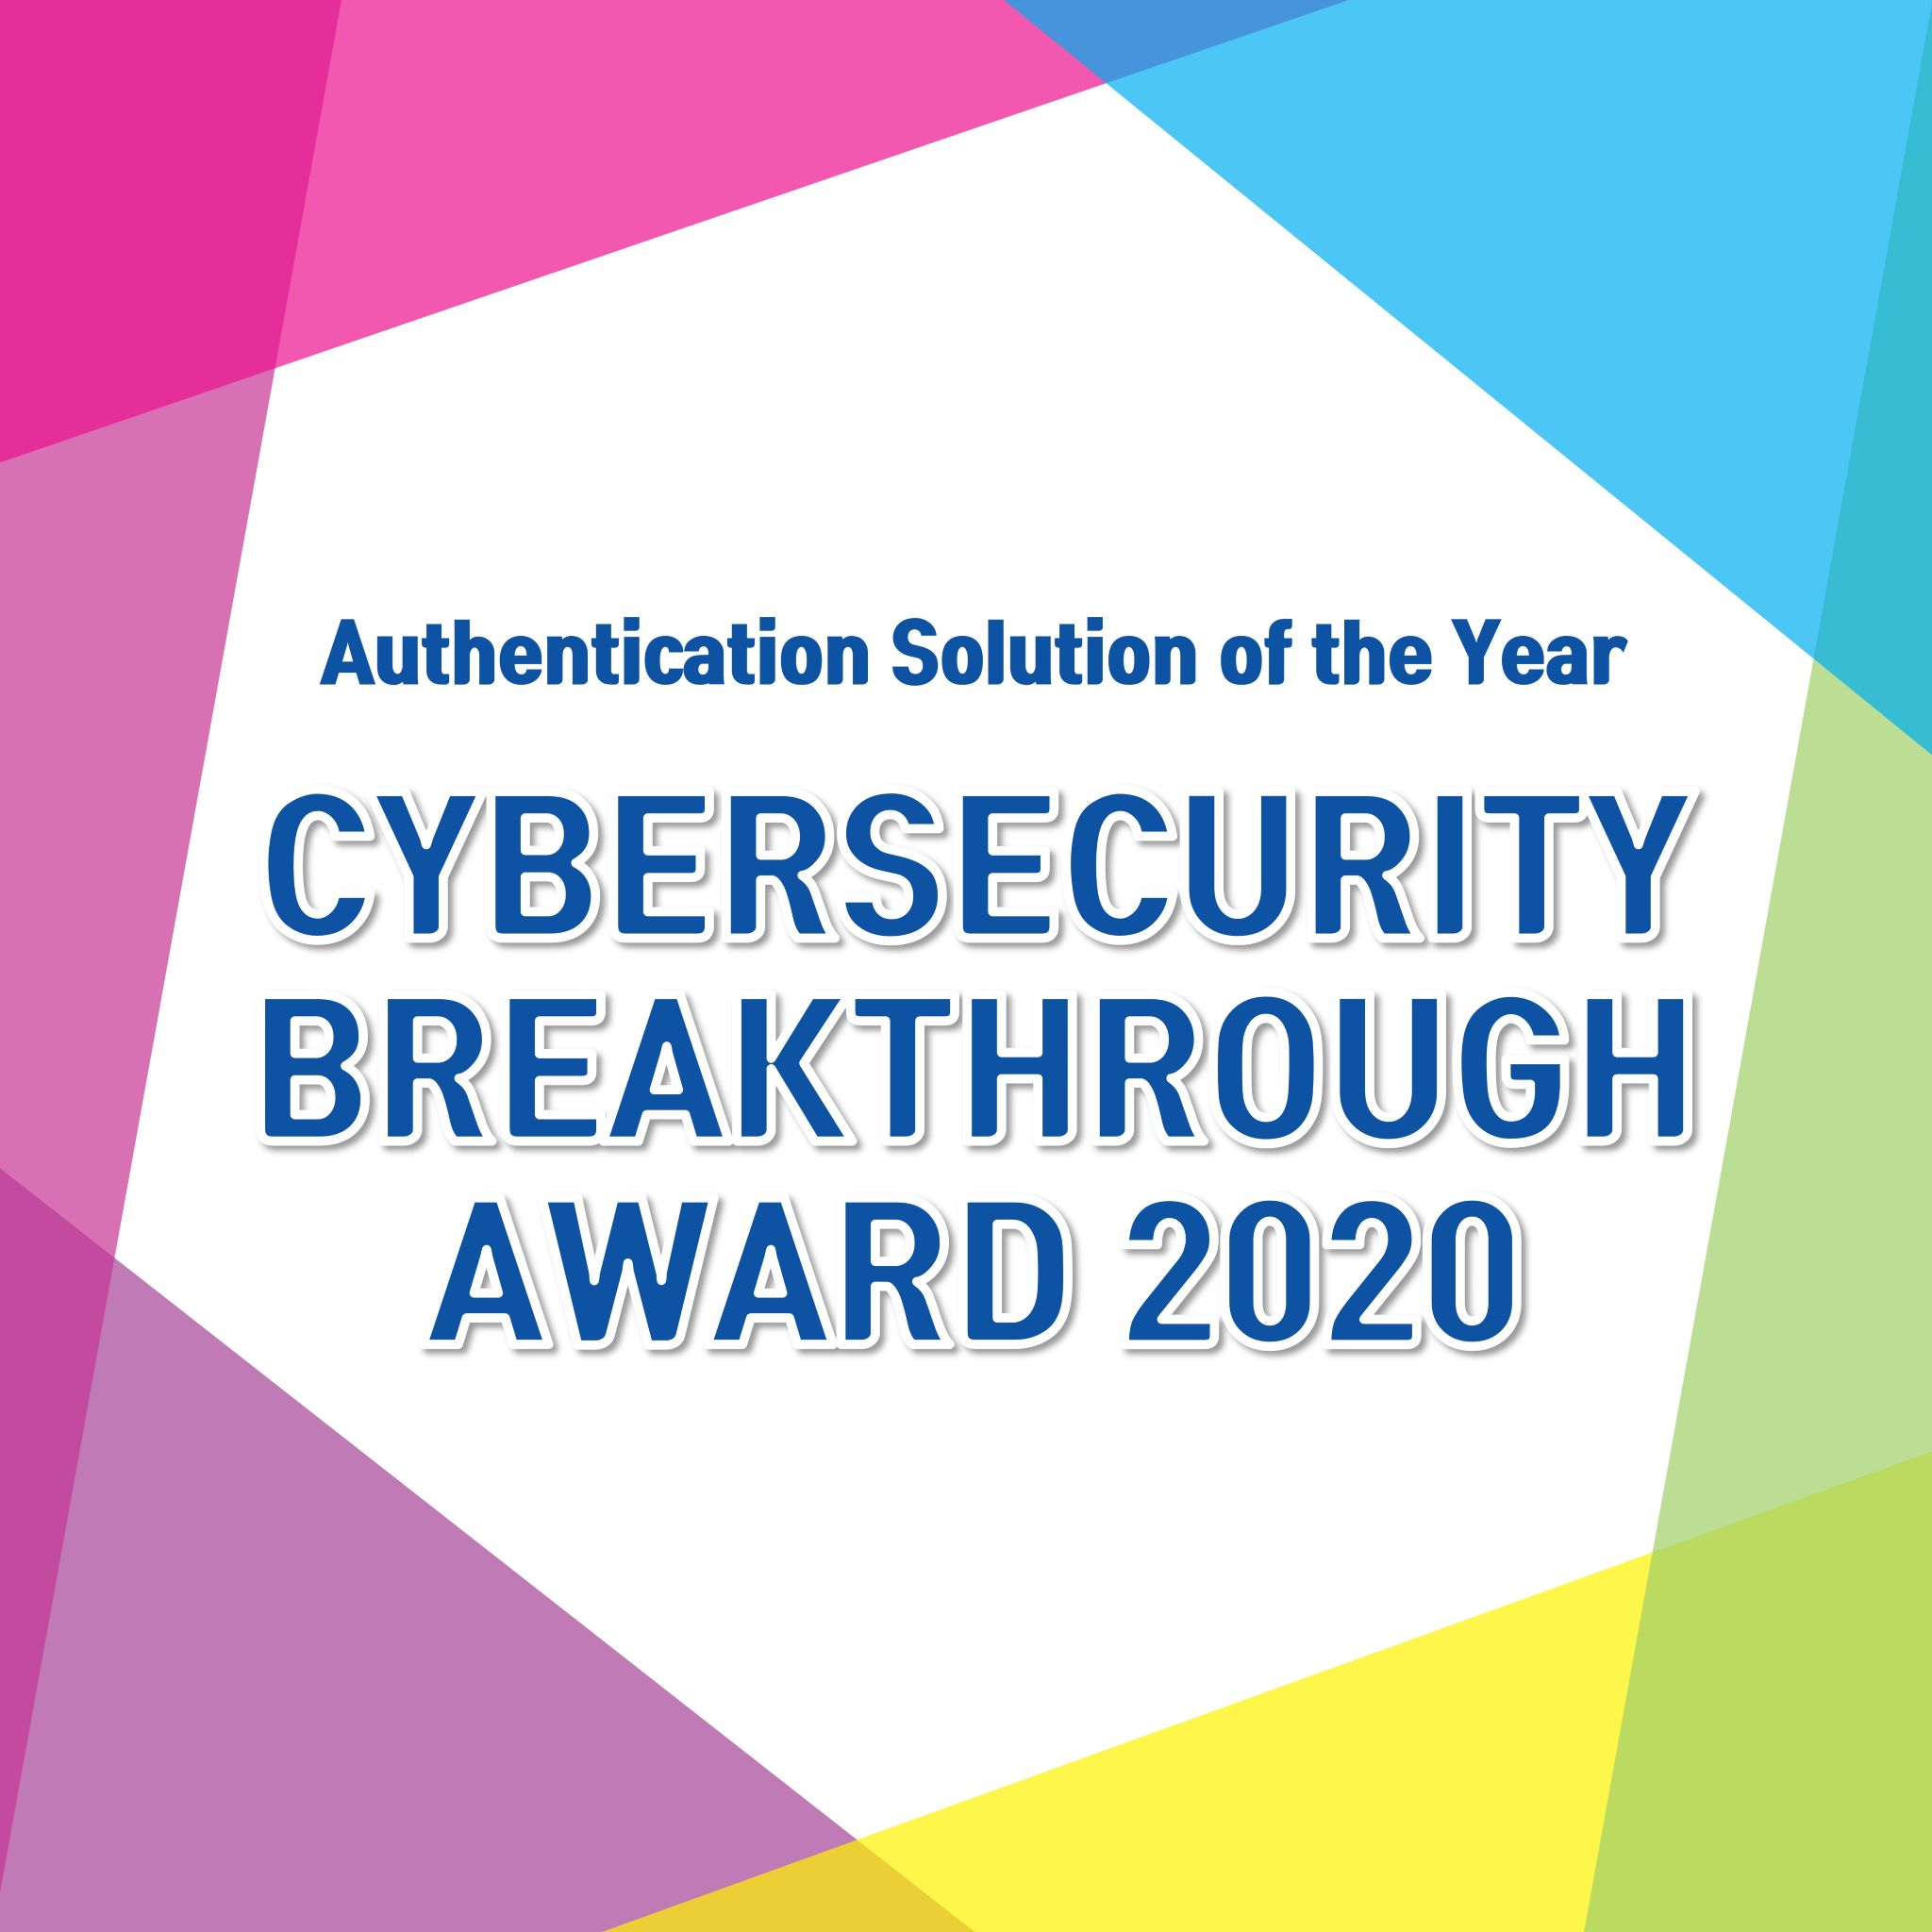 swIDch Wins 'Authentication Solution of the Year' in the 2020 CyberSecurity Breakthrough Awards